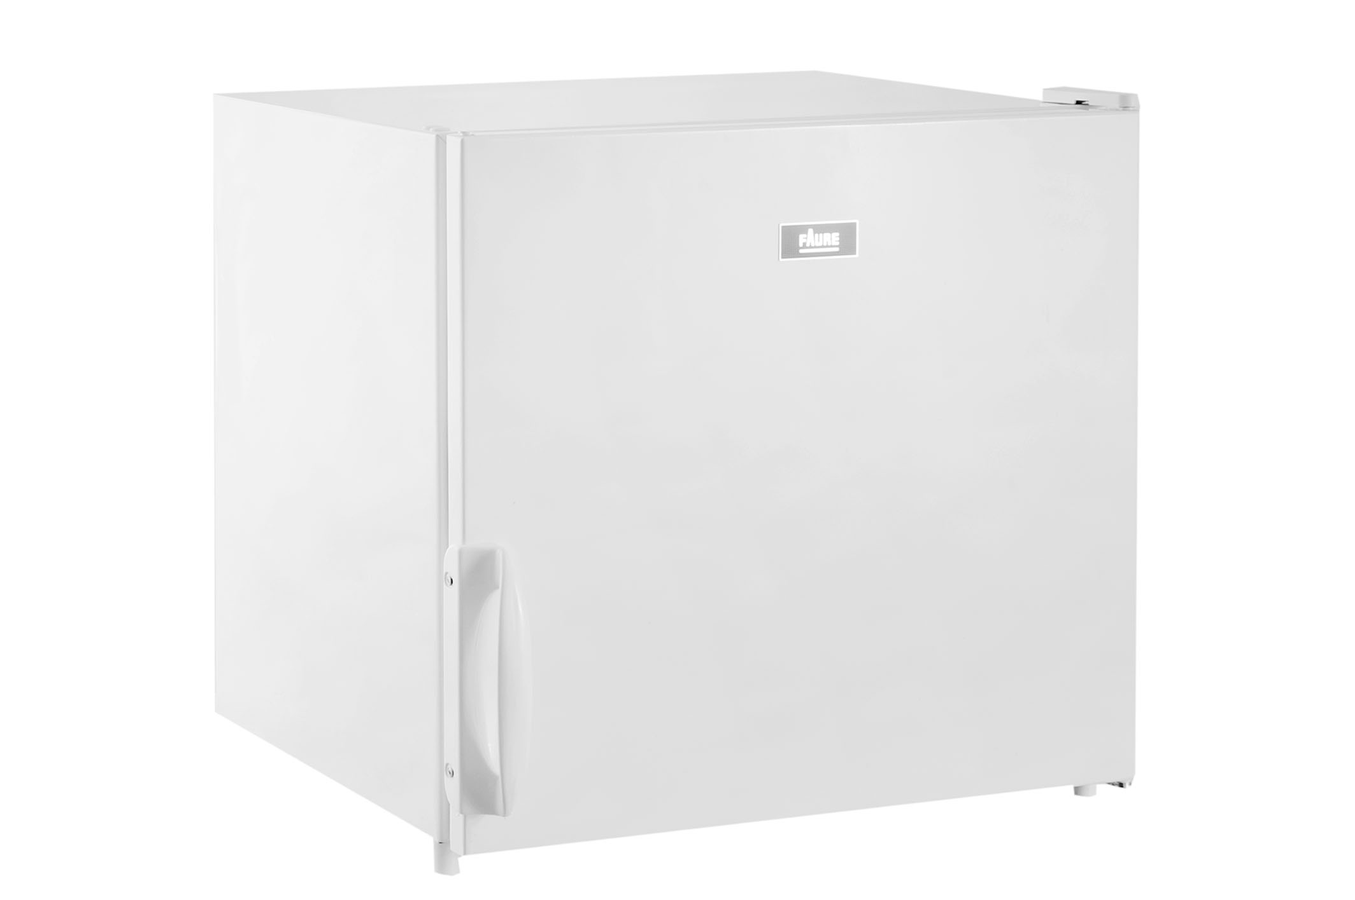 Congelateur cube darty ustensiles de cuisine - Congelateur armoire darty ...